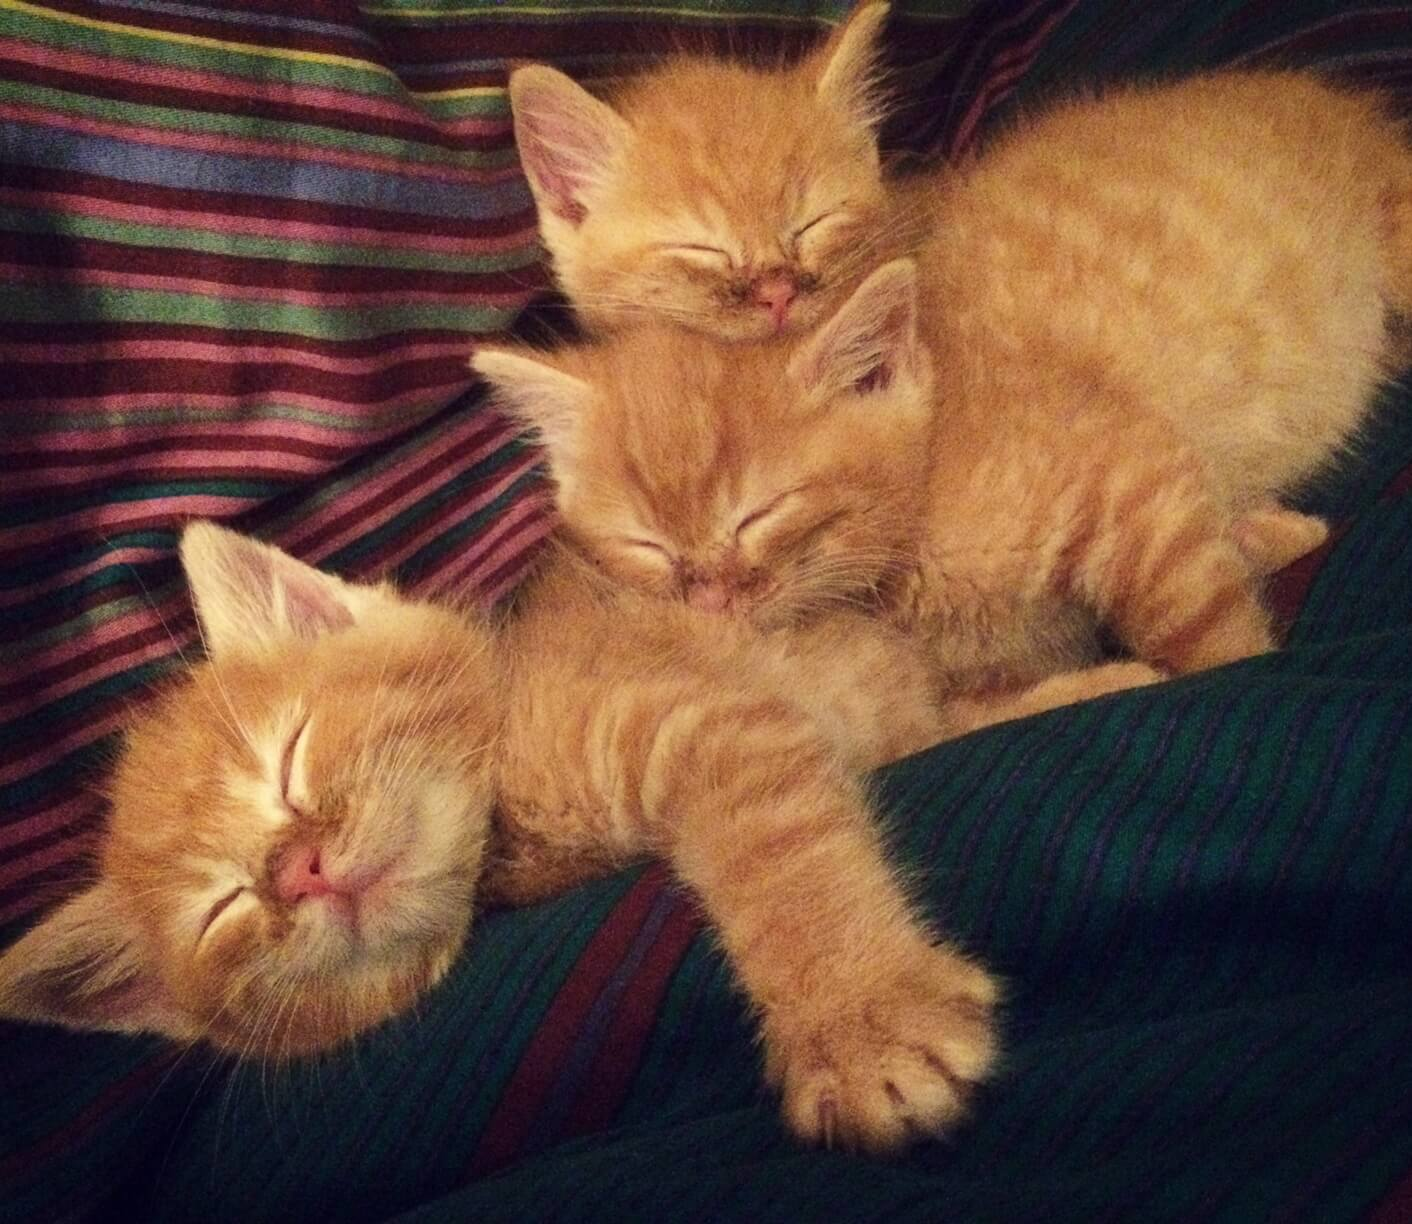 Sleeping kittens.